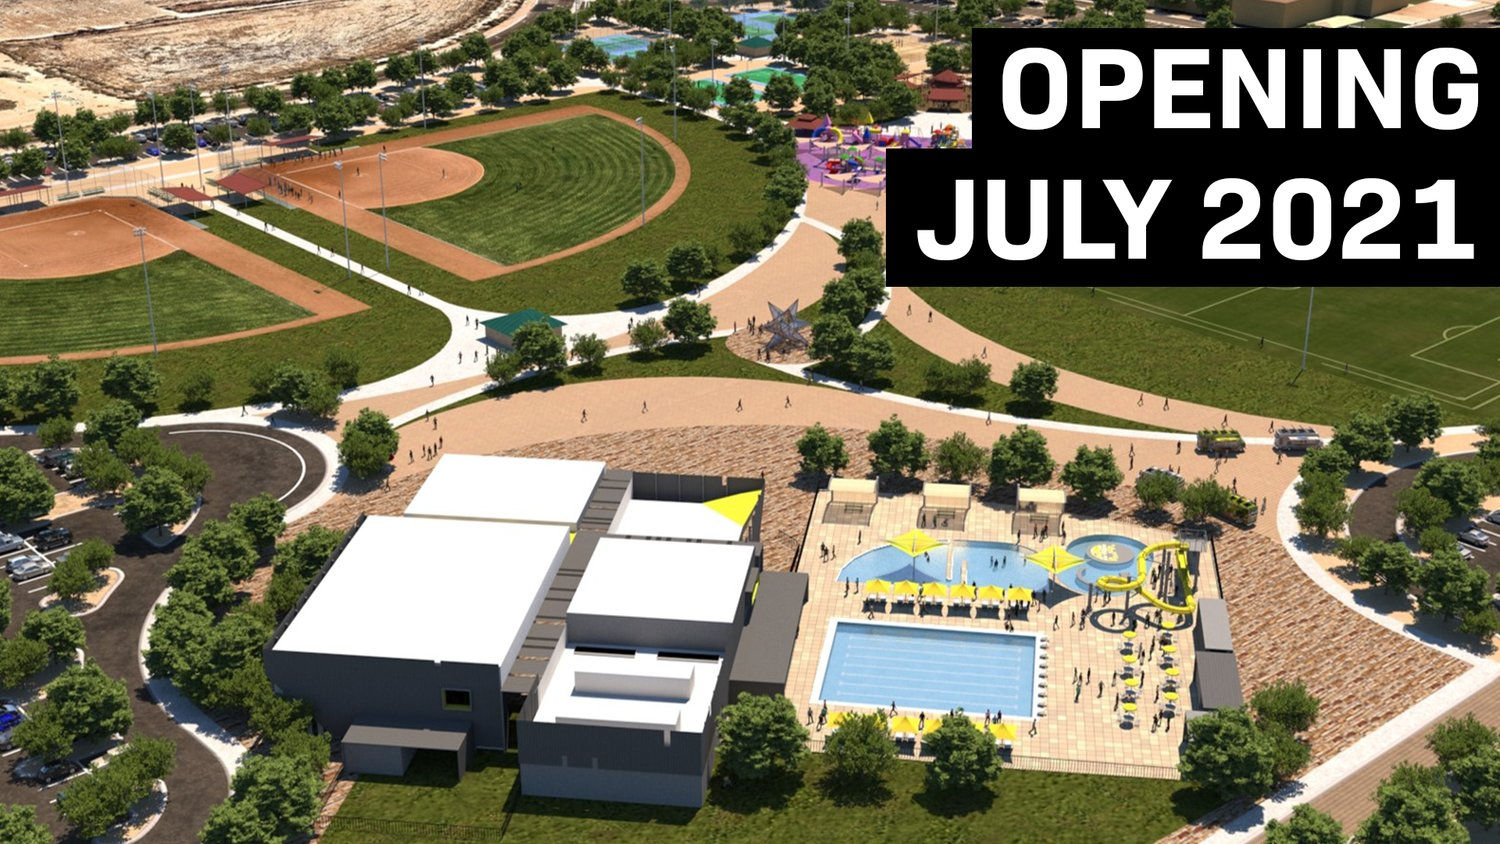 Passes for the new Goodyear Recreation Campus go on sale Saturday, May 1.